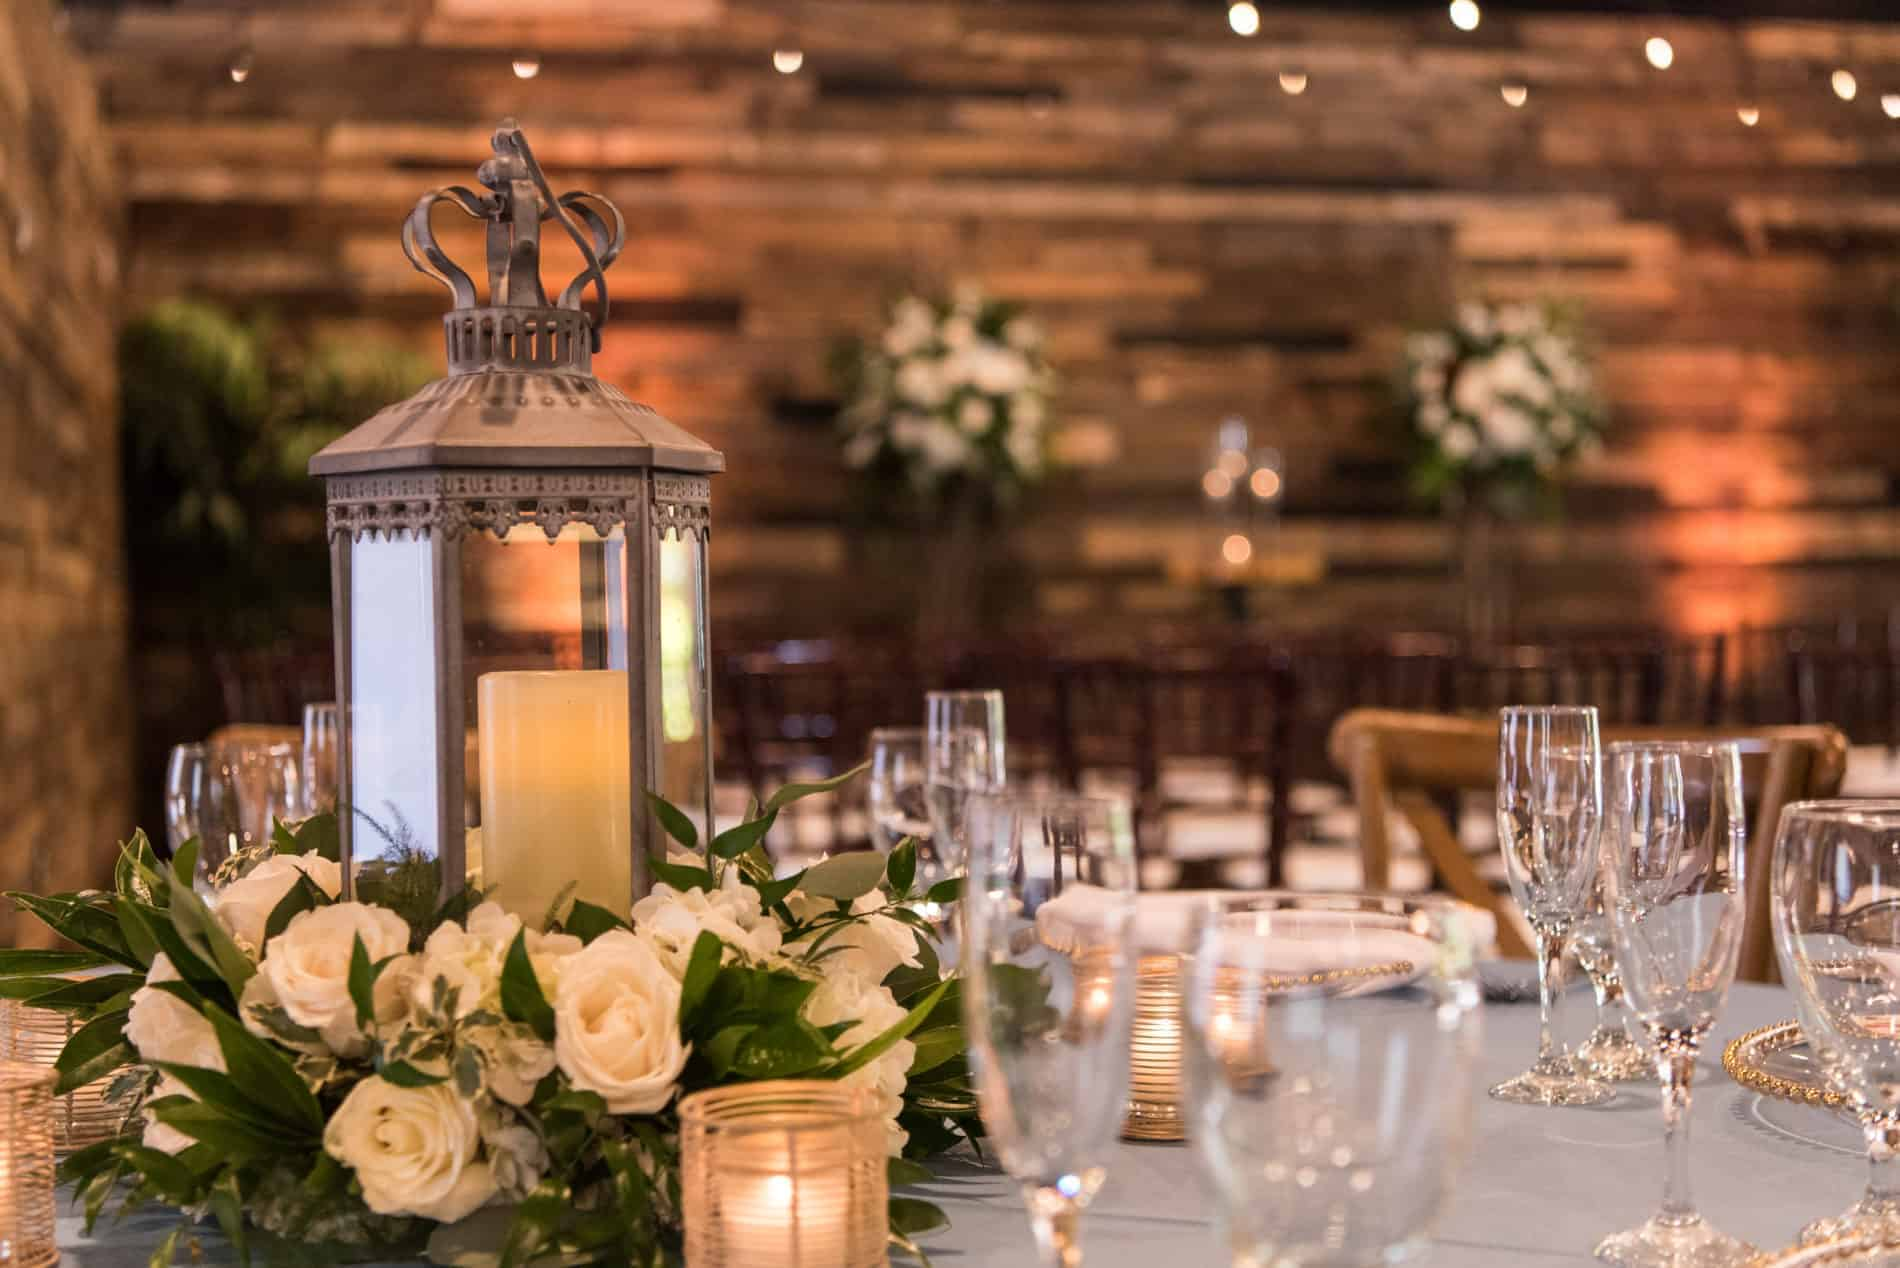 Rustic Lantern Centerpiece in detail on a Farm Table